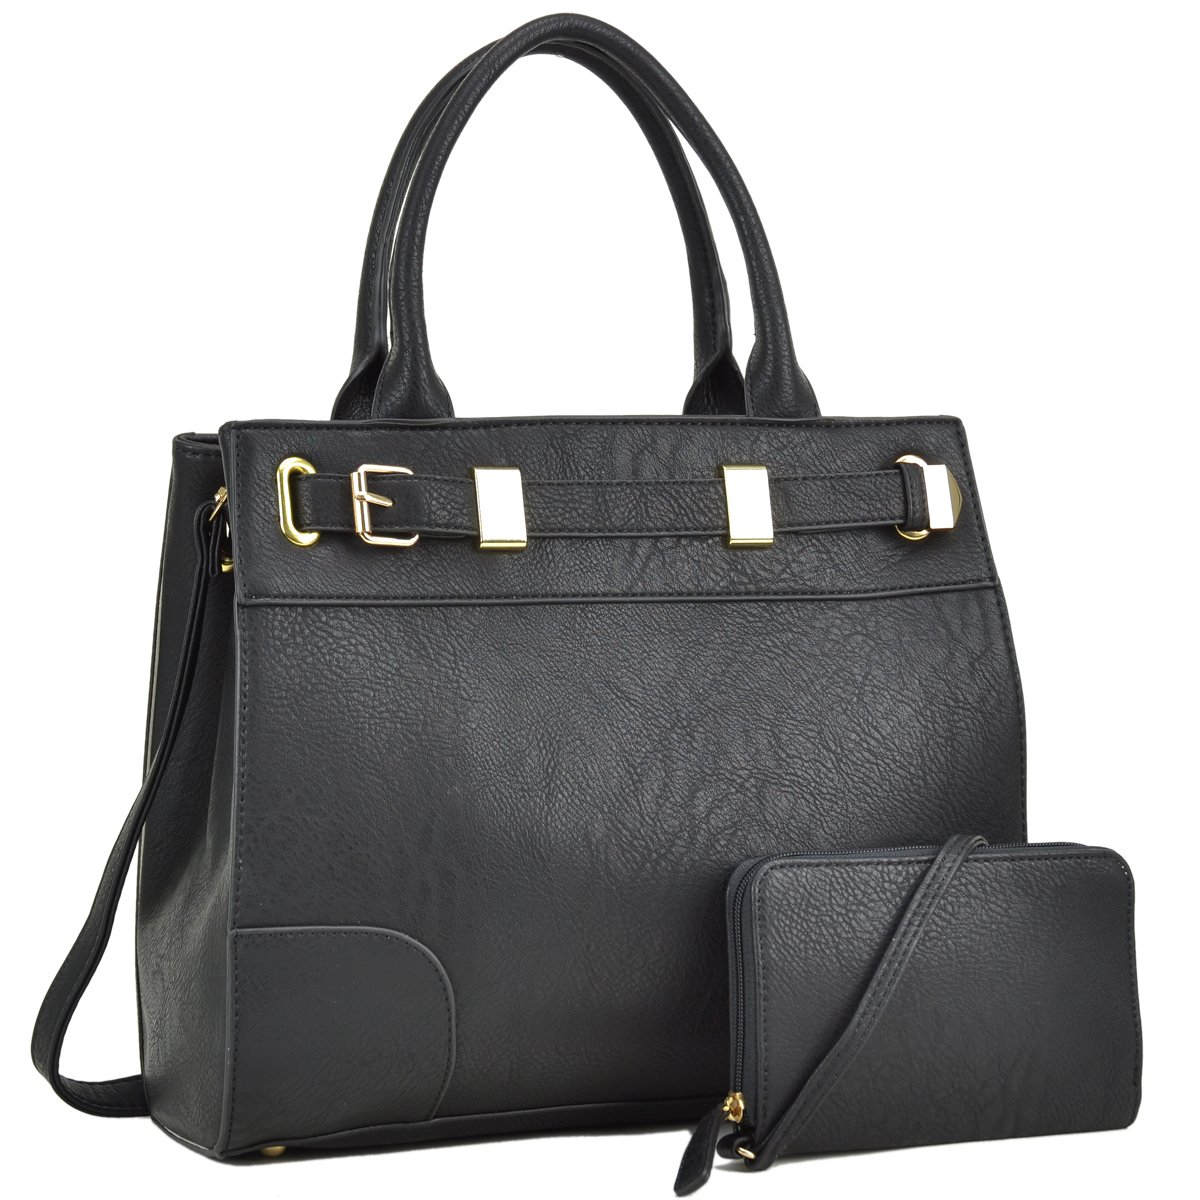 LUXE DESIGN  Get carried away with this signature new look medium satchel  with a Front belted gold plated hinge and a matching wristlet 8a4fd03e29d71